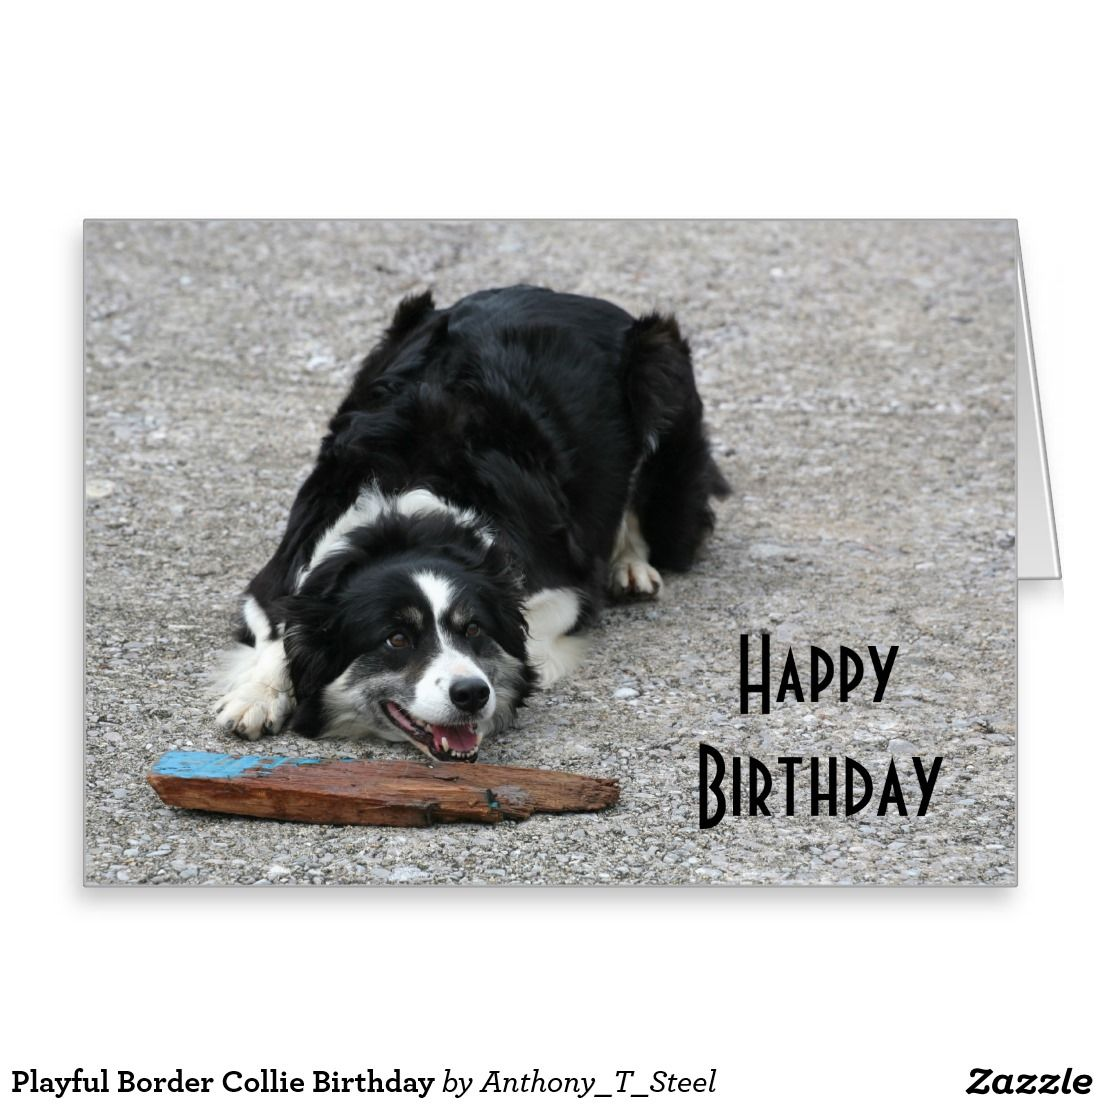 Playful border collie birthday greeting card for dog lovers playful border collie birthday greeting card for dog lovers kristyandbryce Choice Image